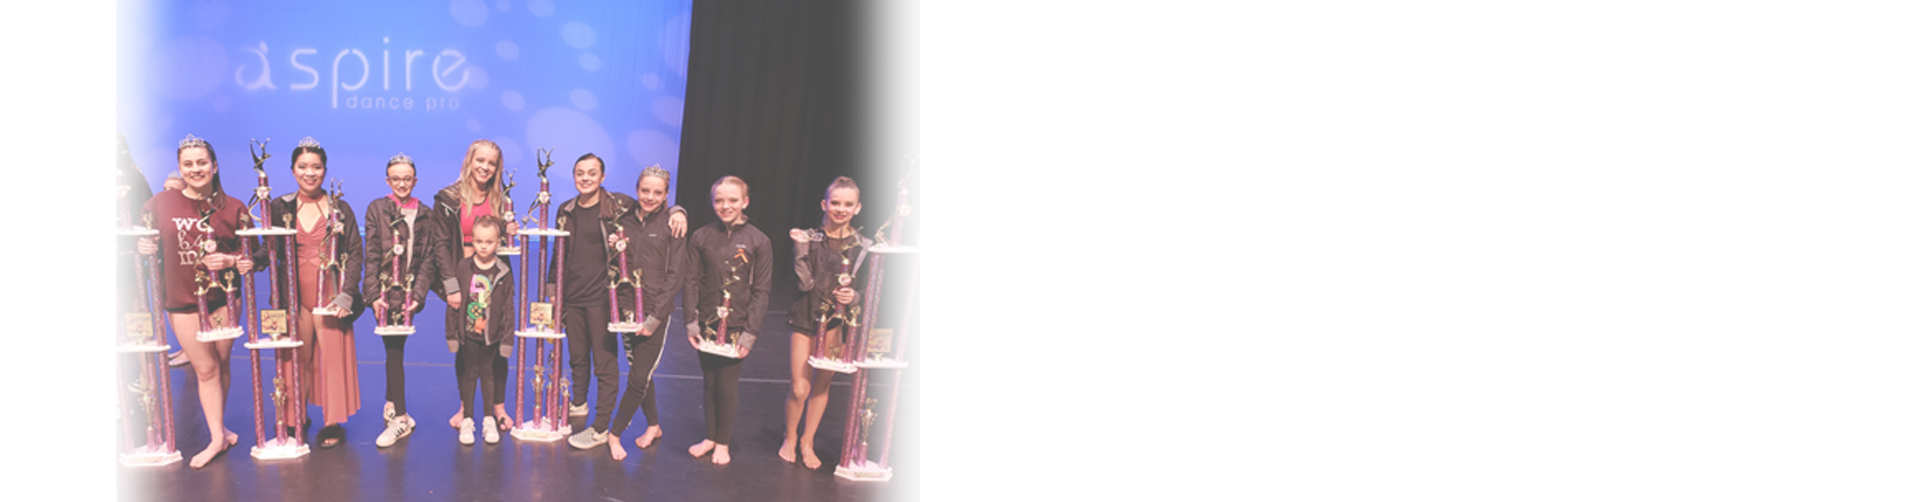 Personalized Awards at Aspire Dance Pro Competitions